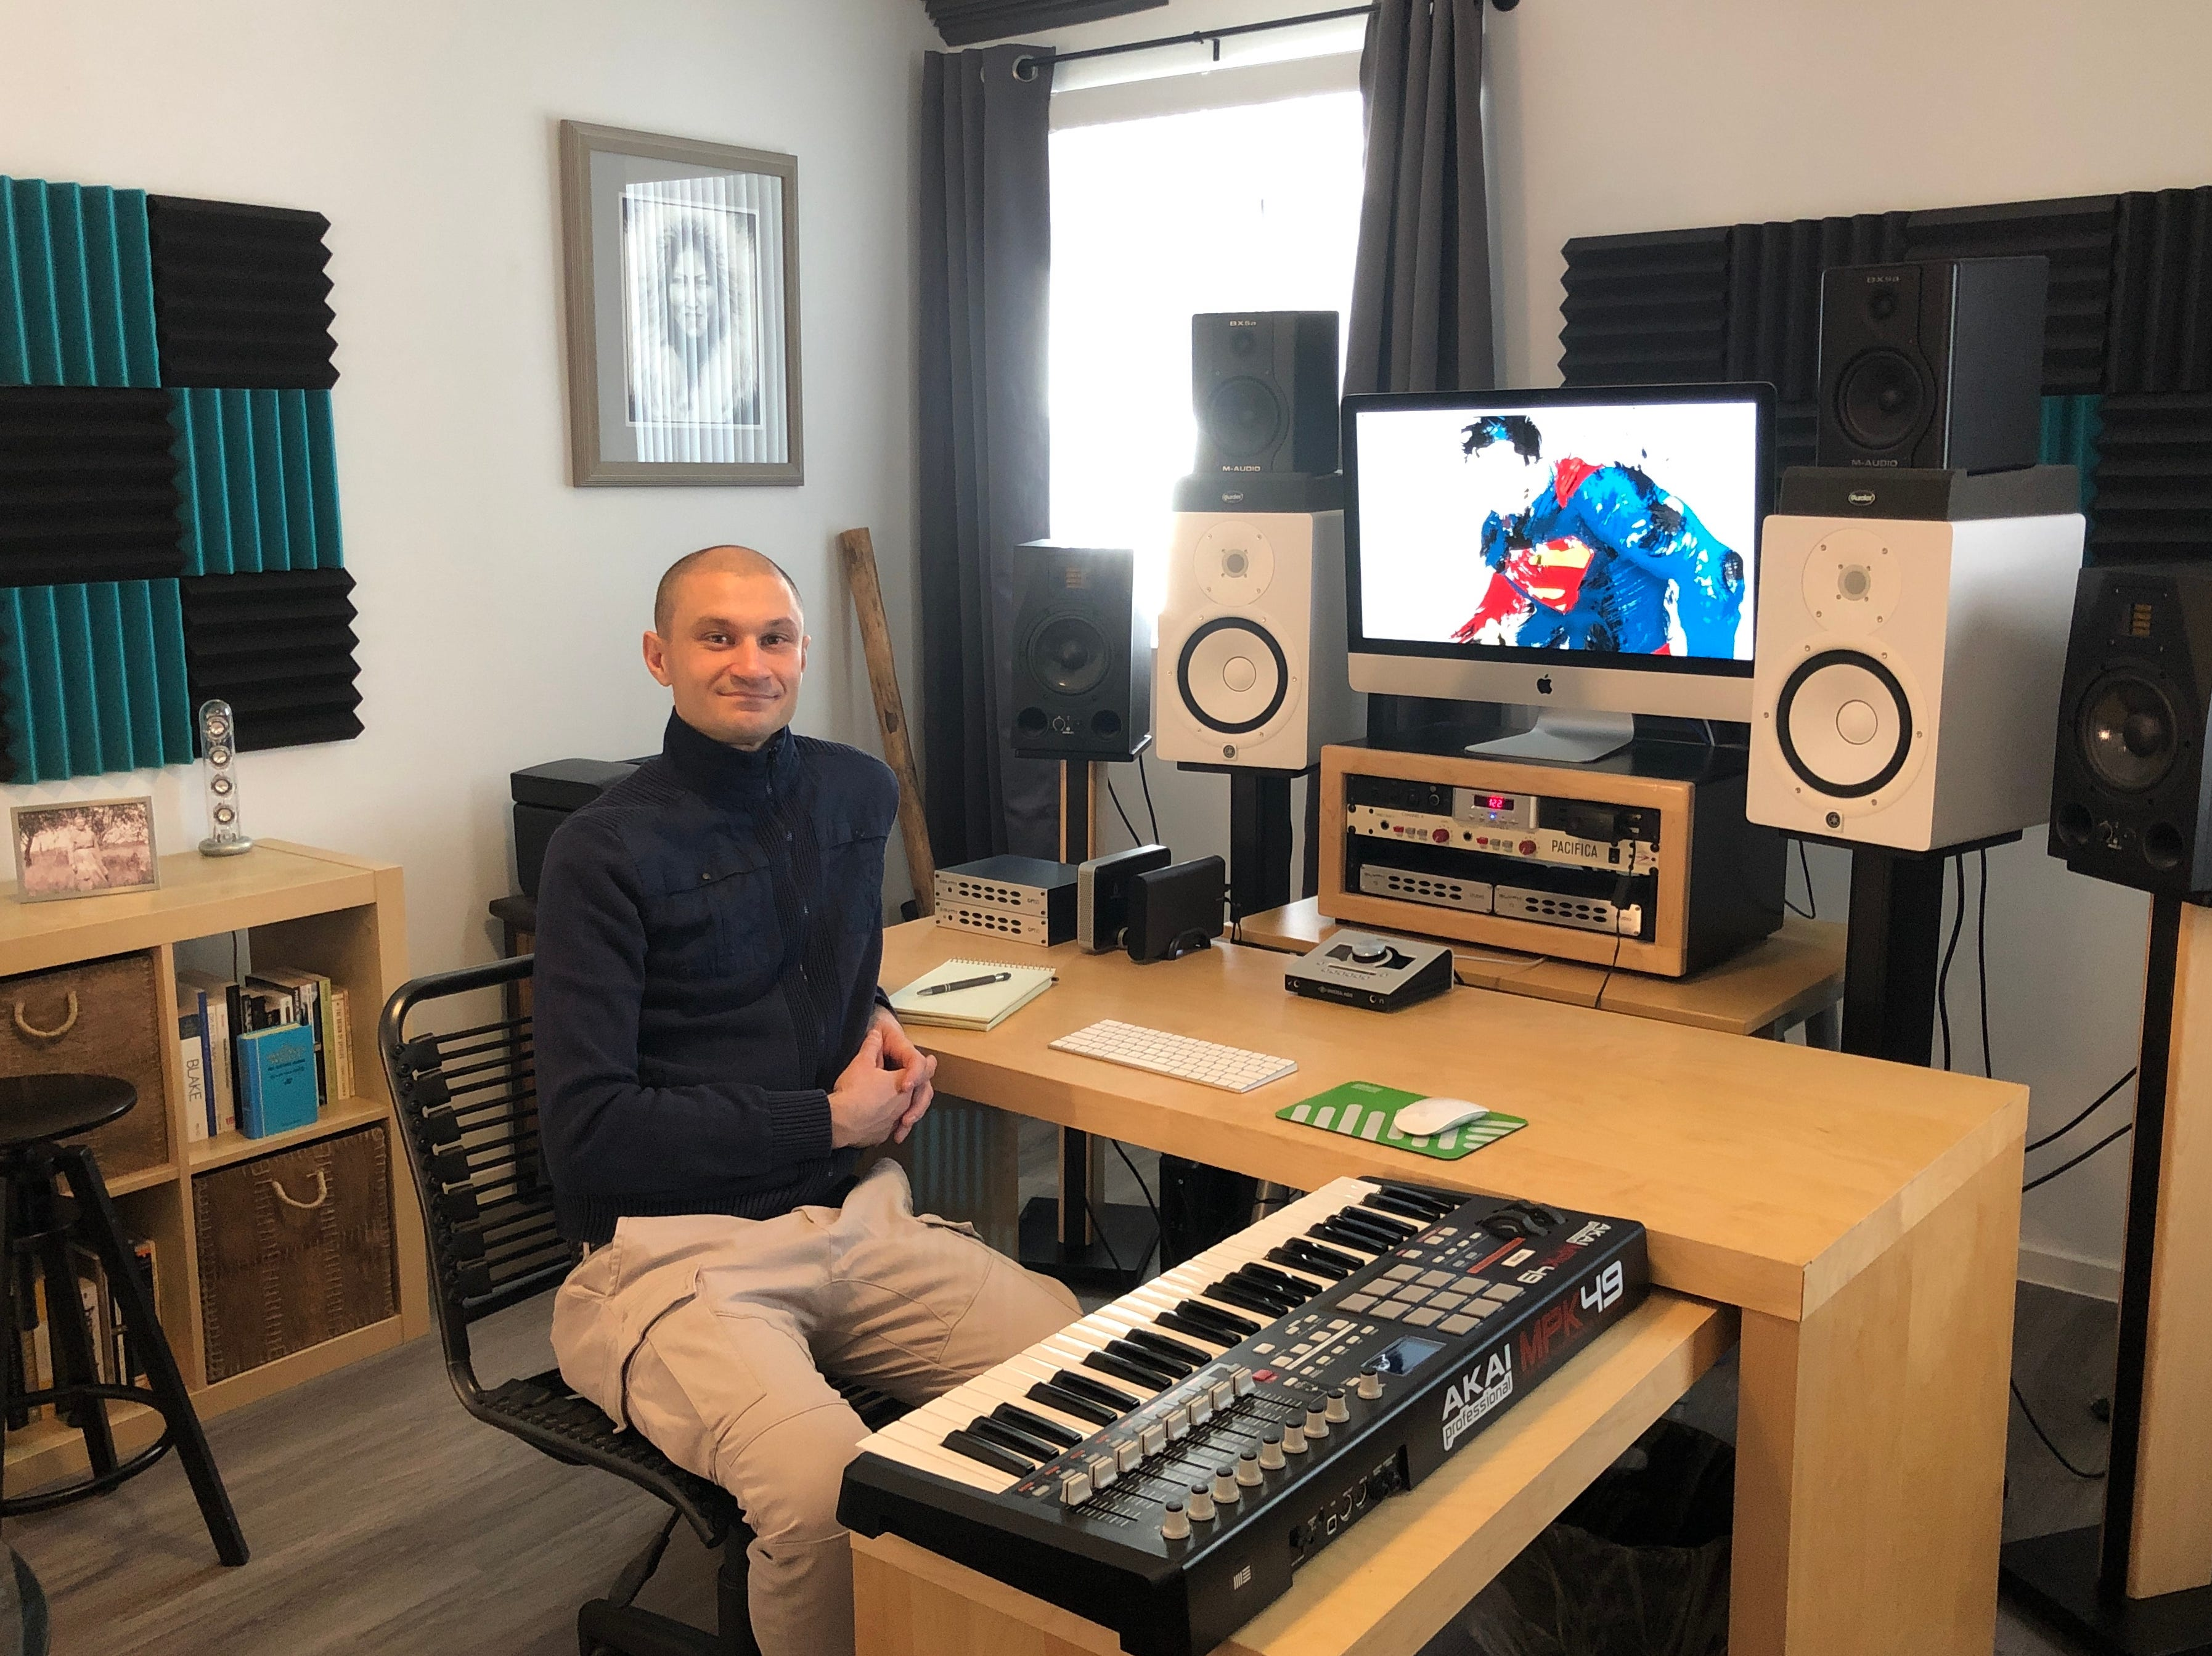 A writer, guitar instructor, musician and audio engineer, Lorin Drexler uses thesecond level of his loft as aproduction studio.